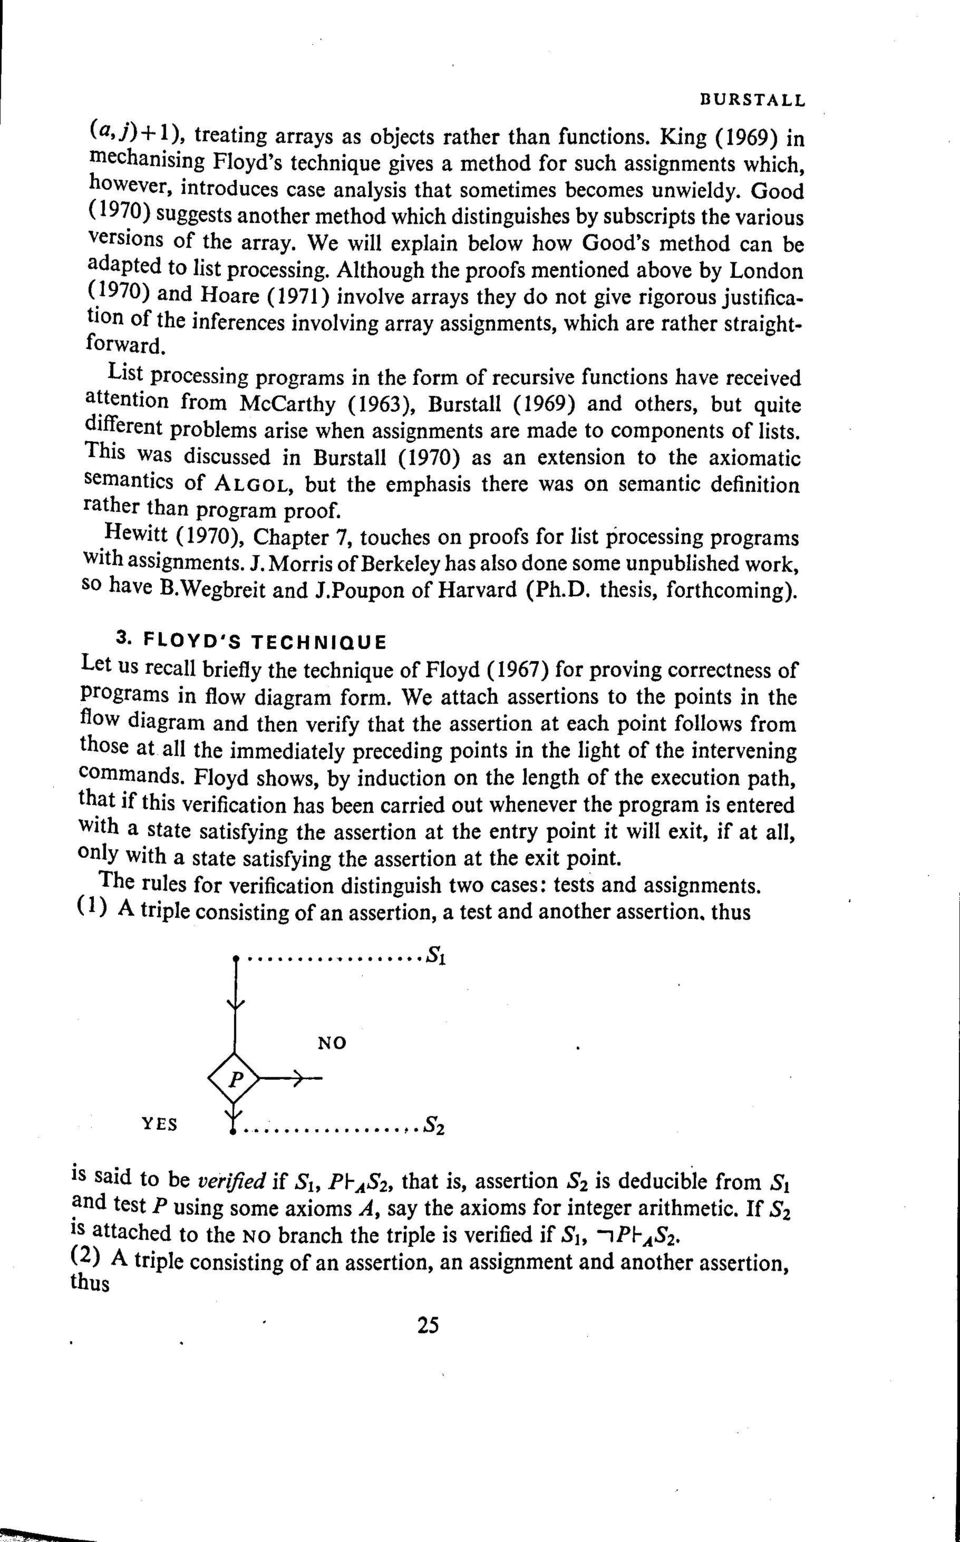 Good (1970) suggests nother method which distinguishes by subscripts the vrious versions of the rry. We will explin below how Good's method cn be dpted to list processing.